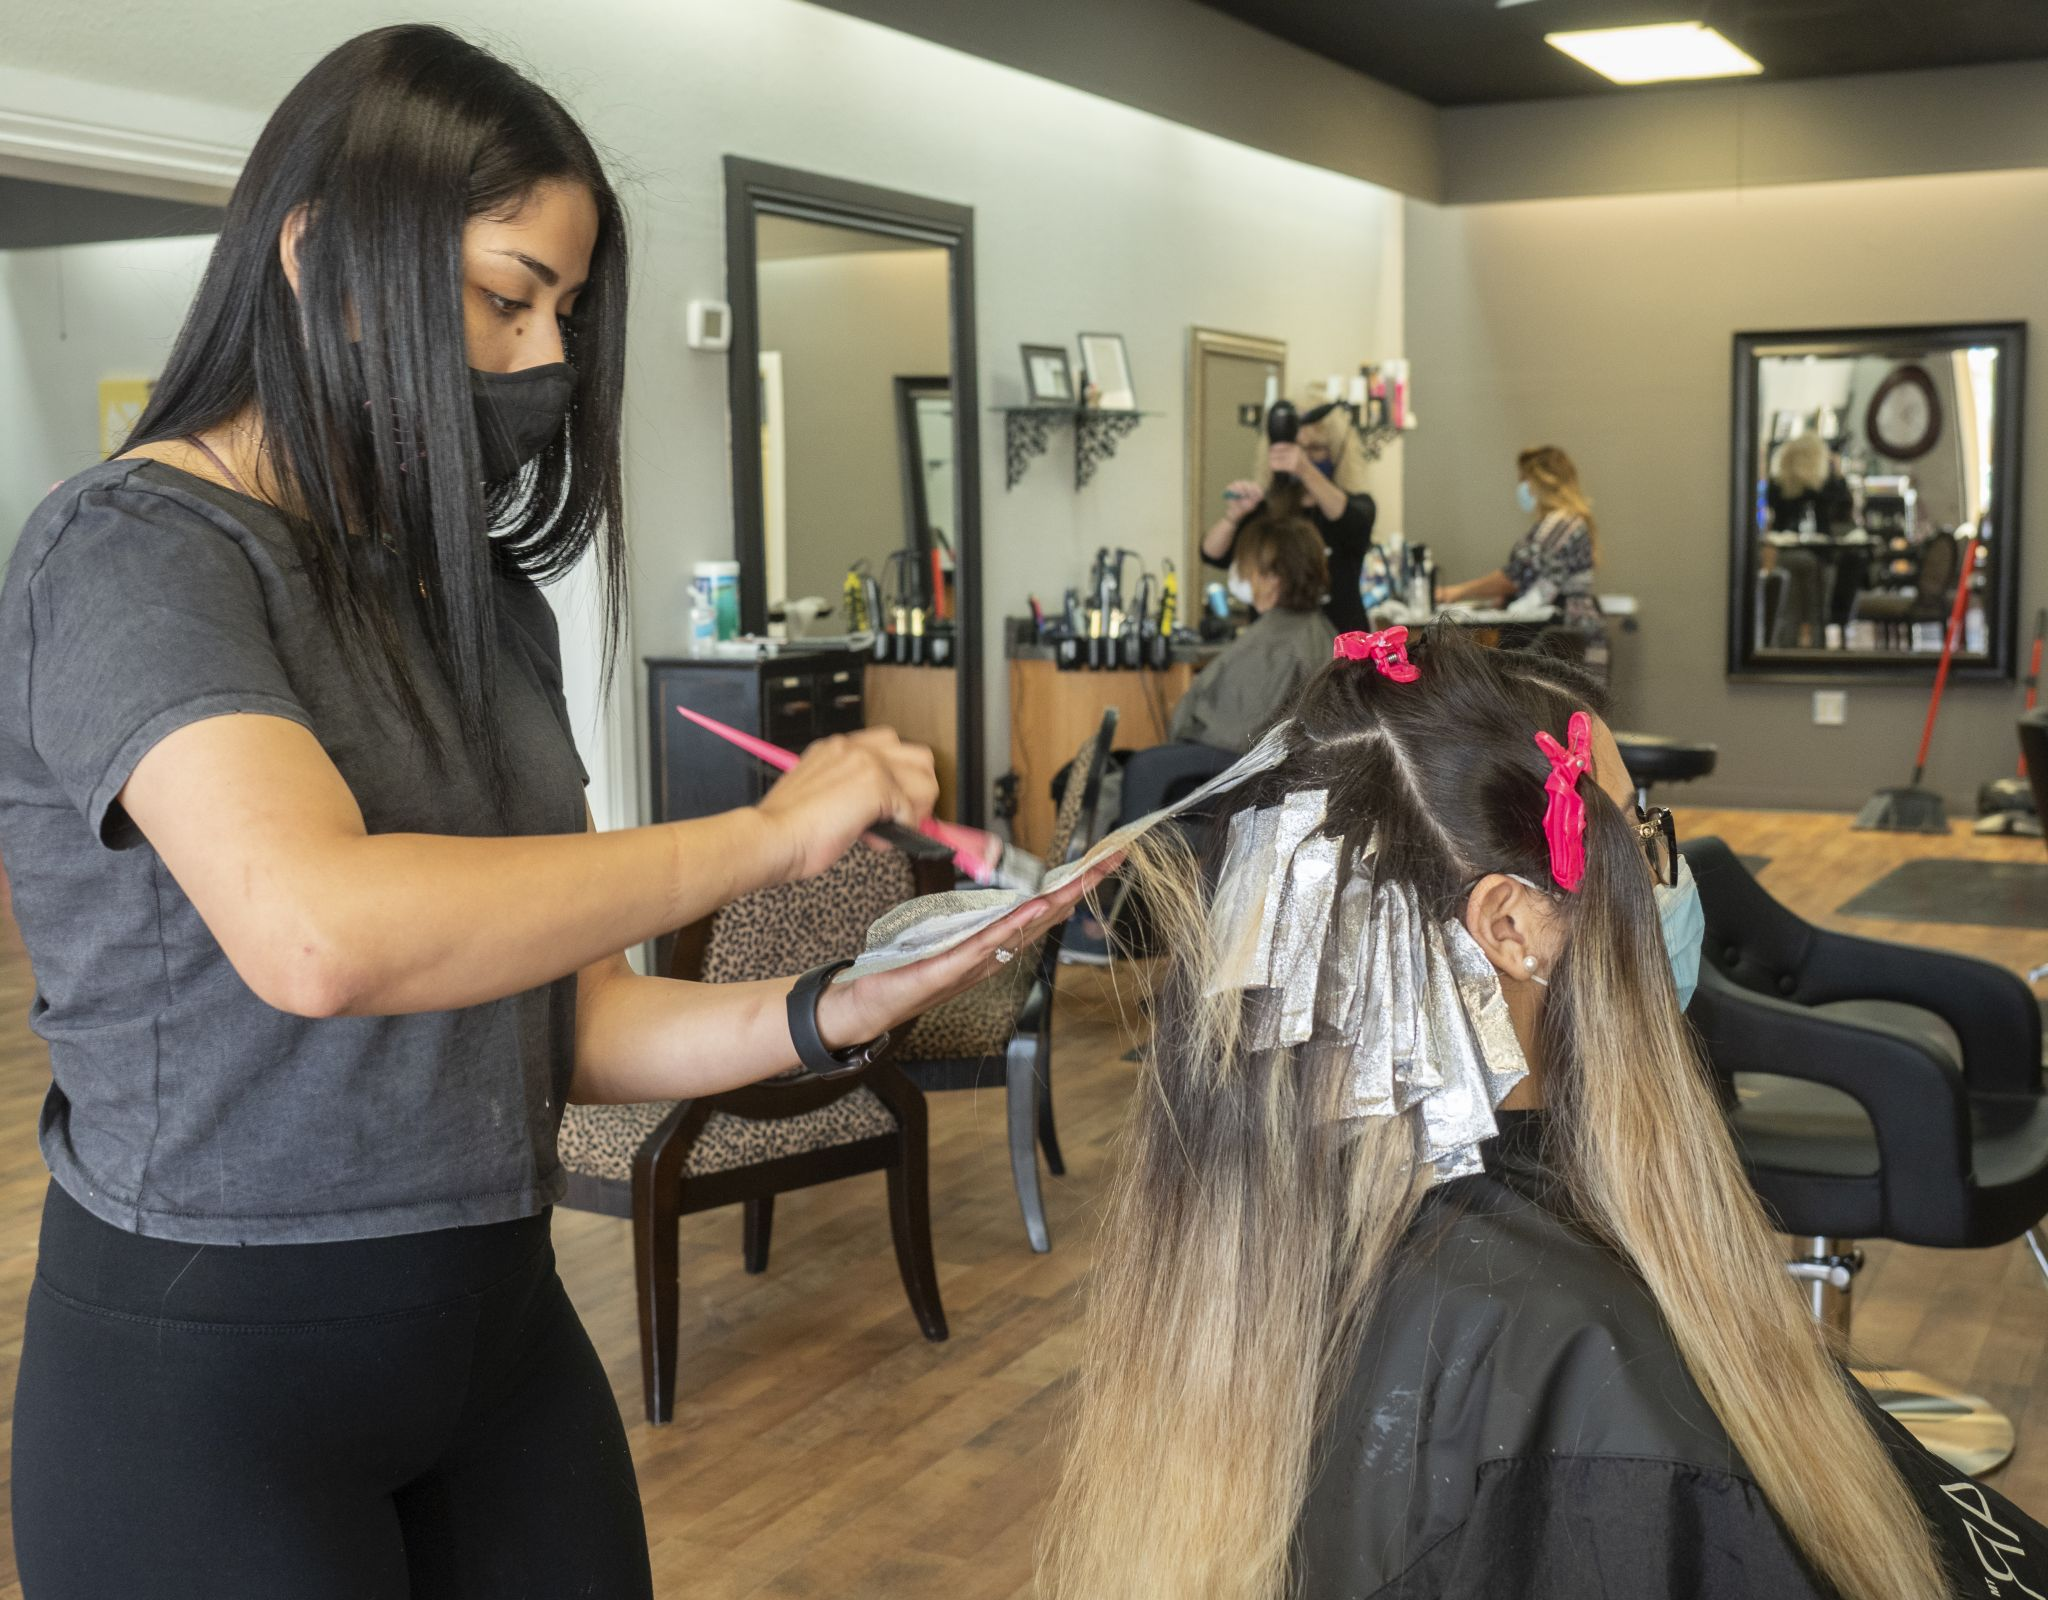 Midland salons busy on first day of reopening - Midland Reporter